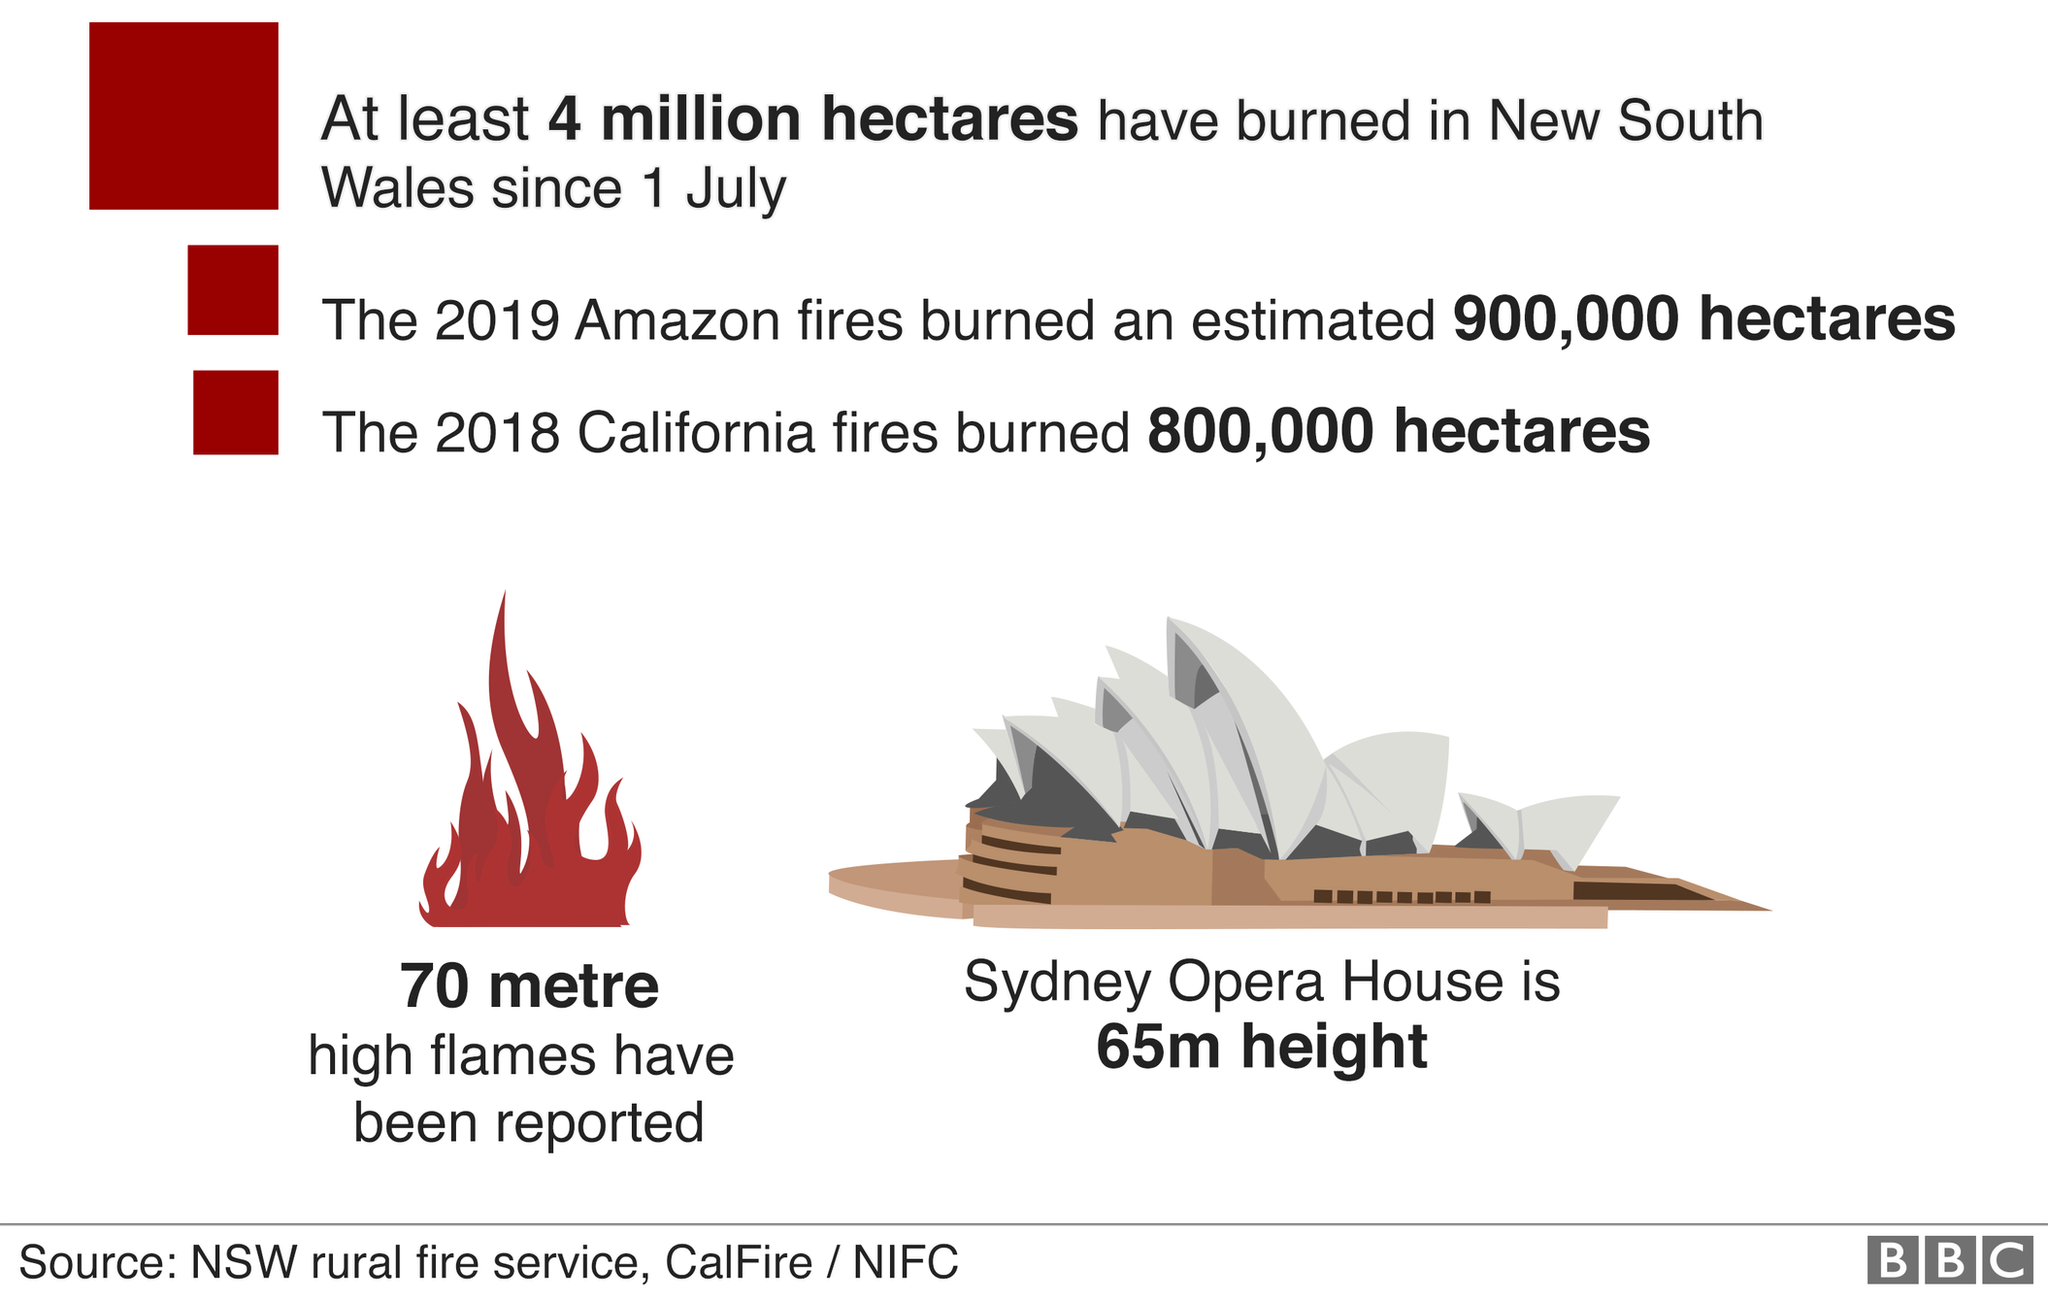 How big are the fires?